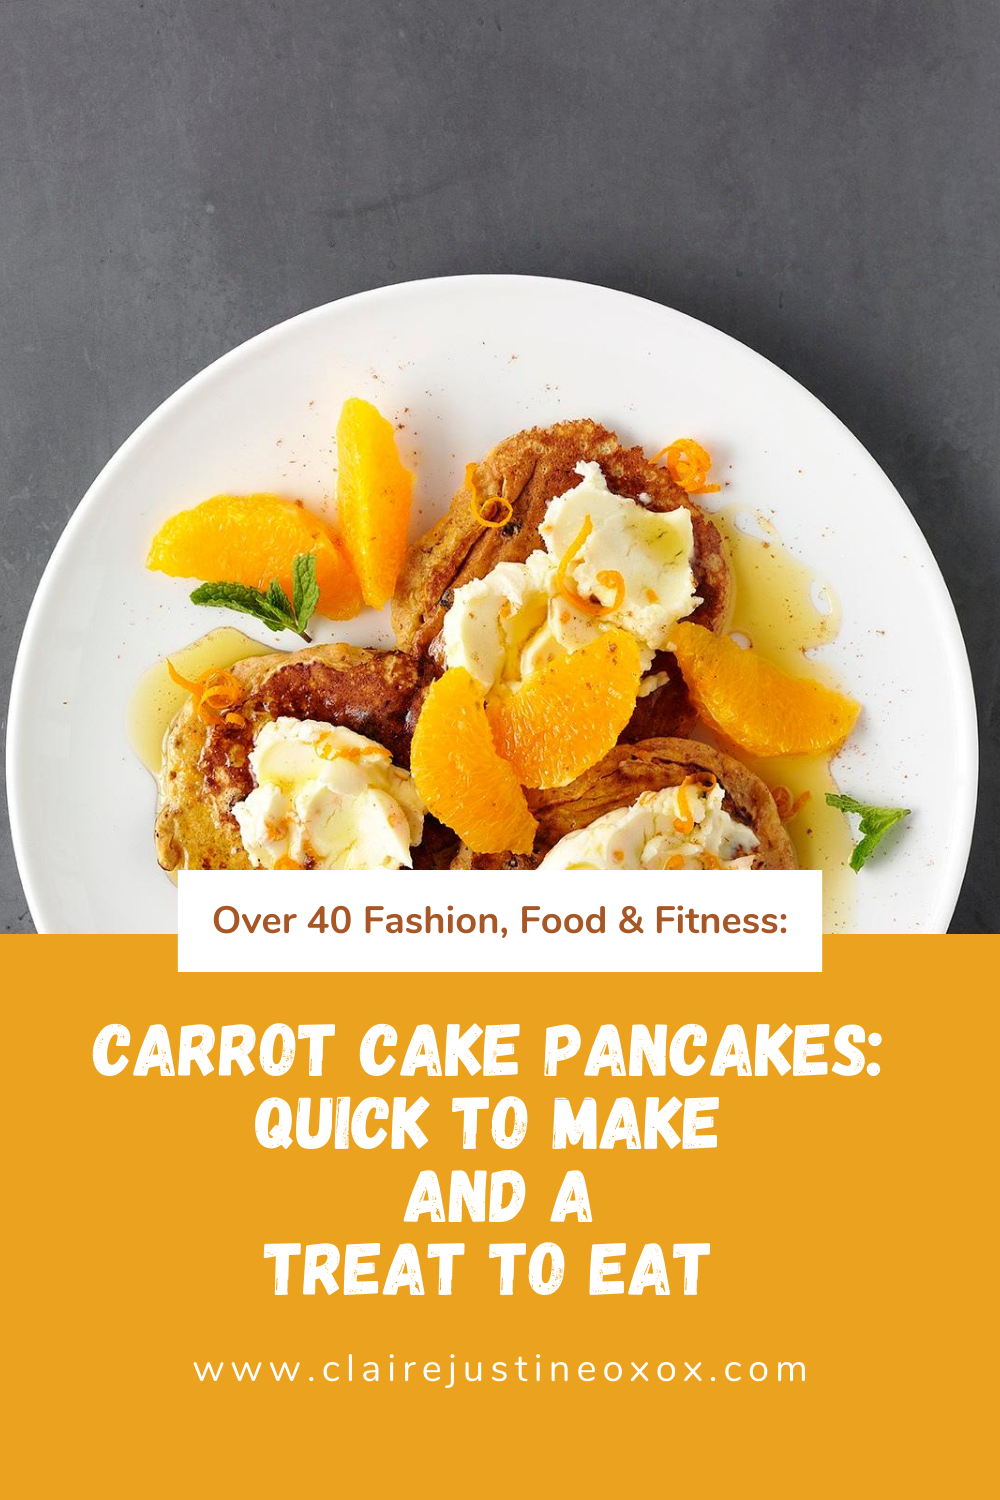 Carrot Cake Pancakes: Quick To Make And A Treat To Eat